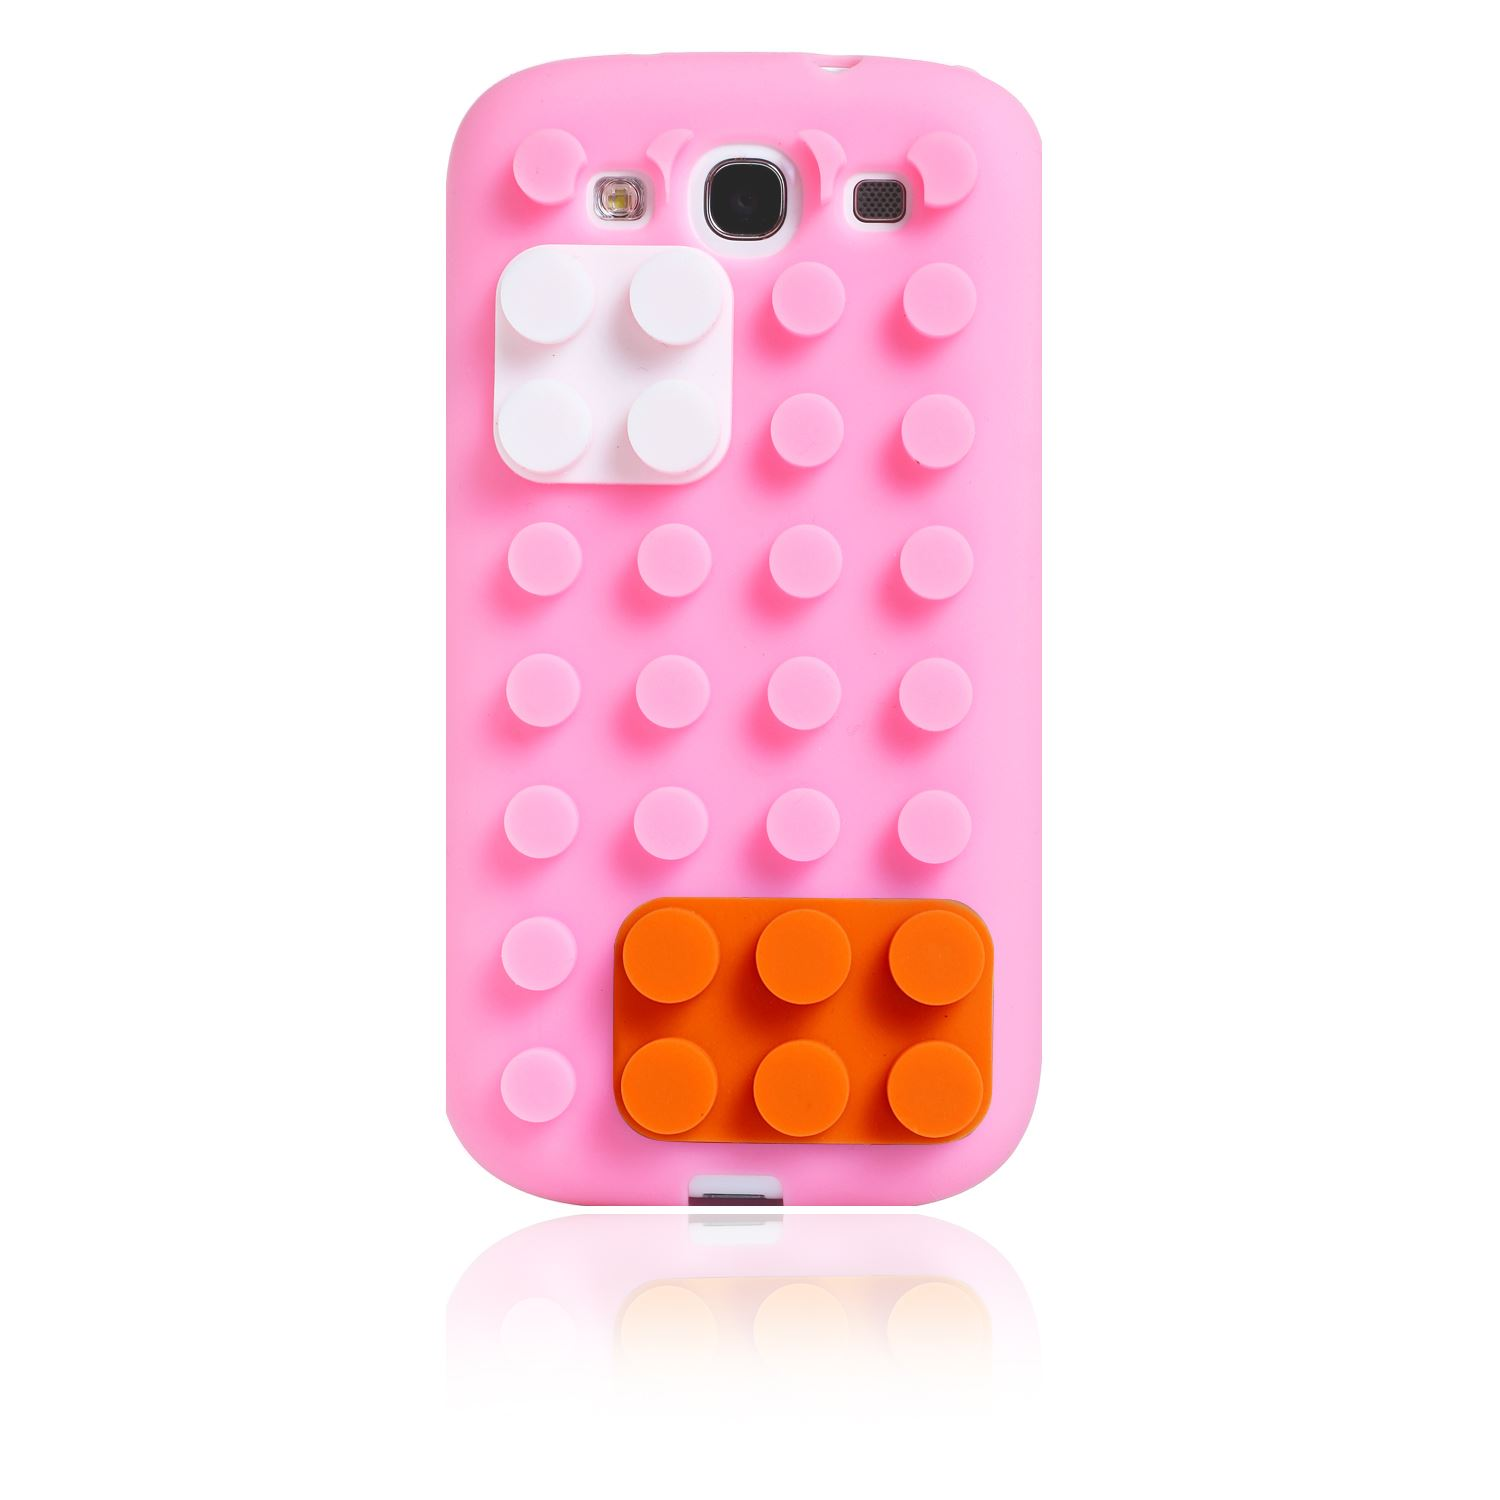 ... BLOCKS STAND SOFT SILICONE COVER CASE FOR SAMSUNG GALAXY S3 III : eBay